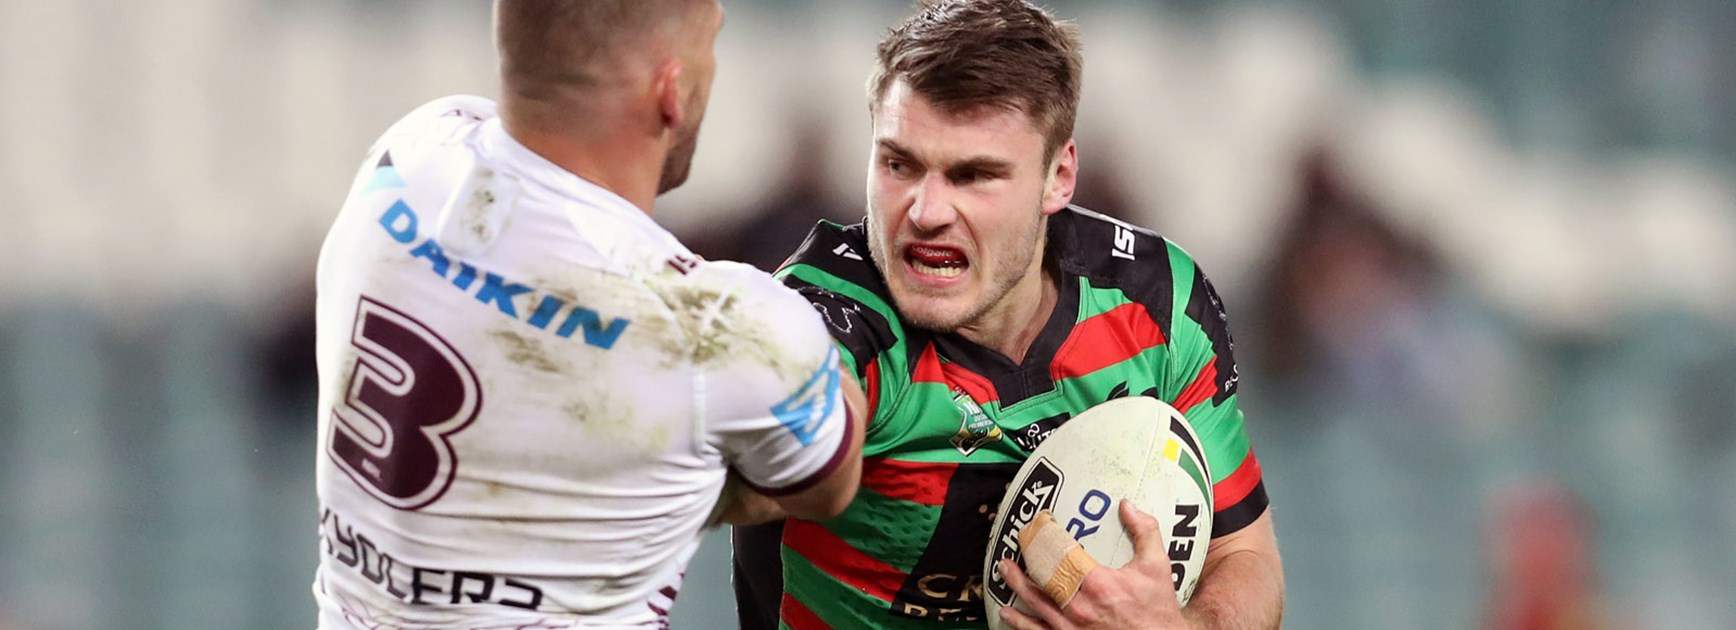 Rabbitohs young gun Angus Crichton against the Sea Eagles in Round 20.